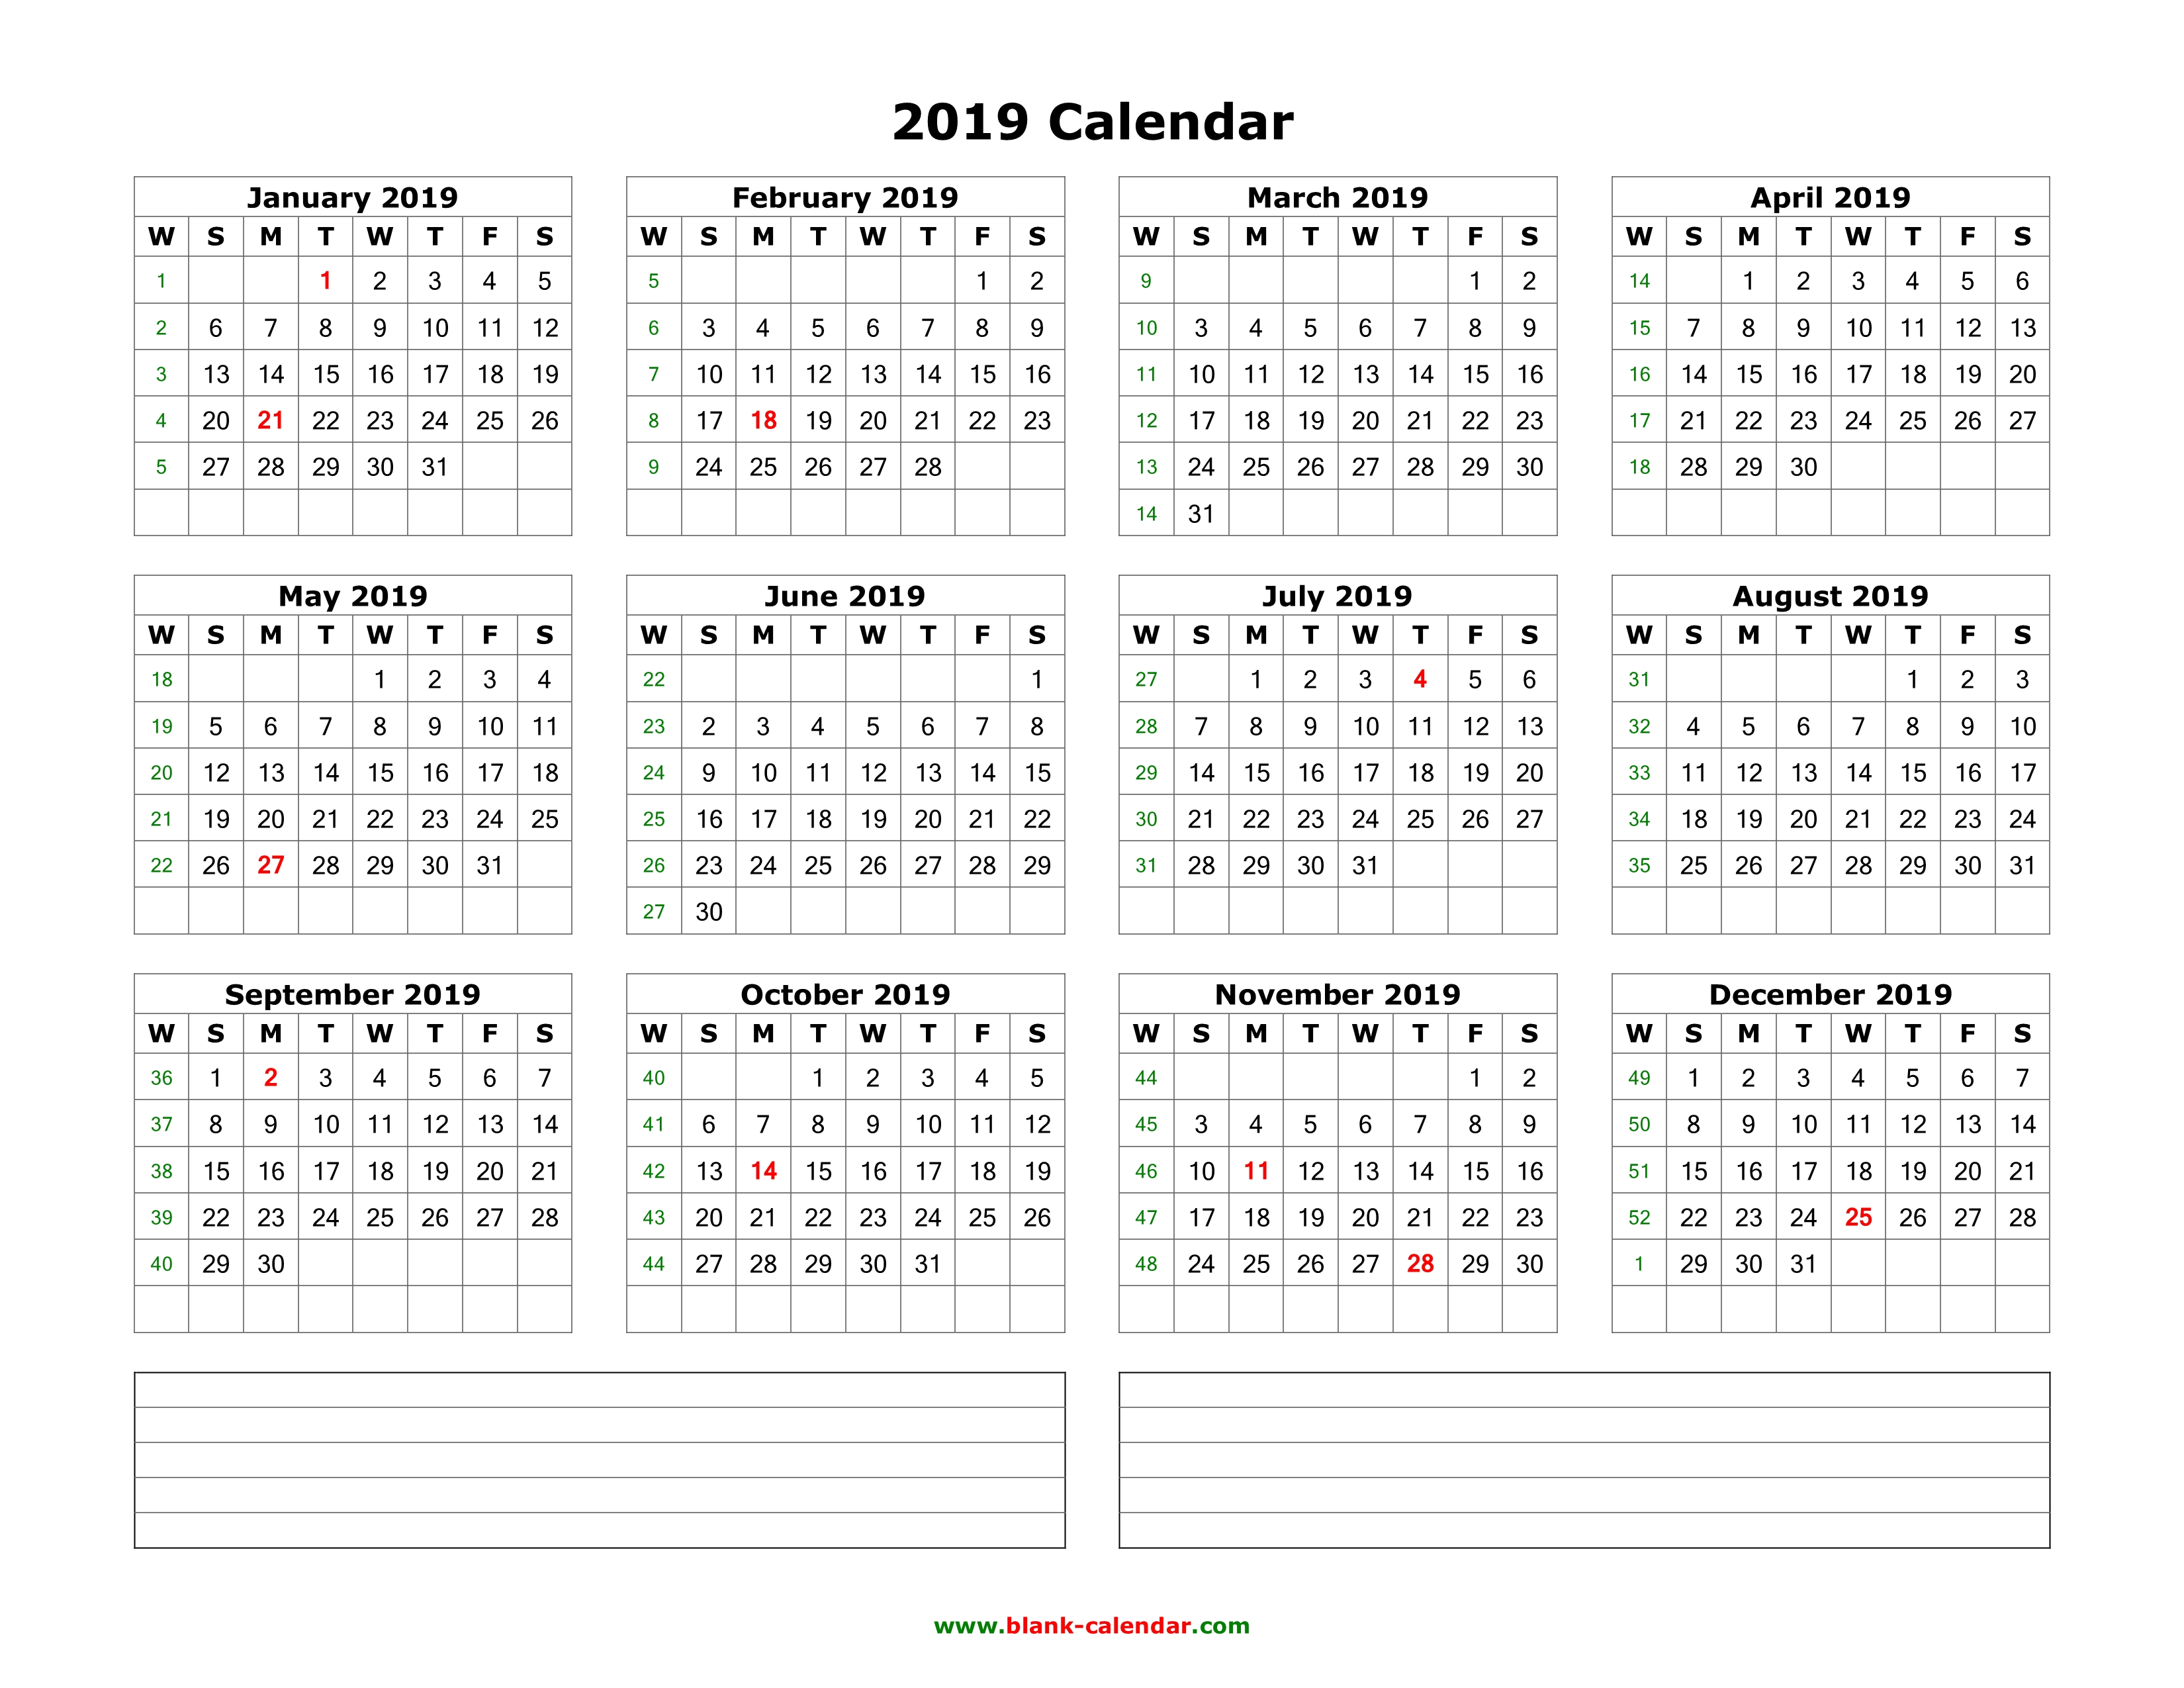 2019 Year Calendar One Page With Download Blank Space For Notes 12 Months On